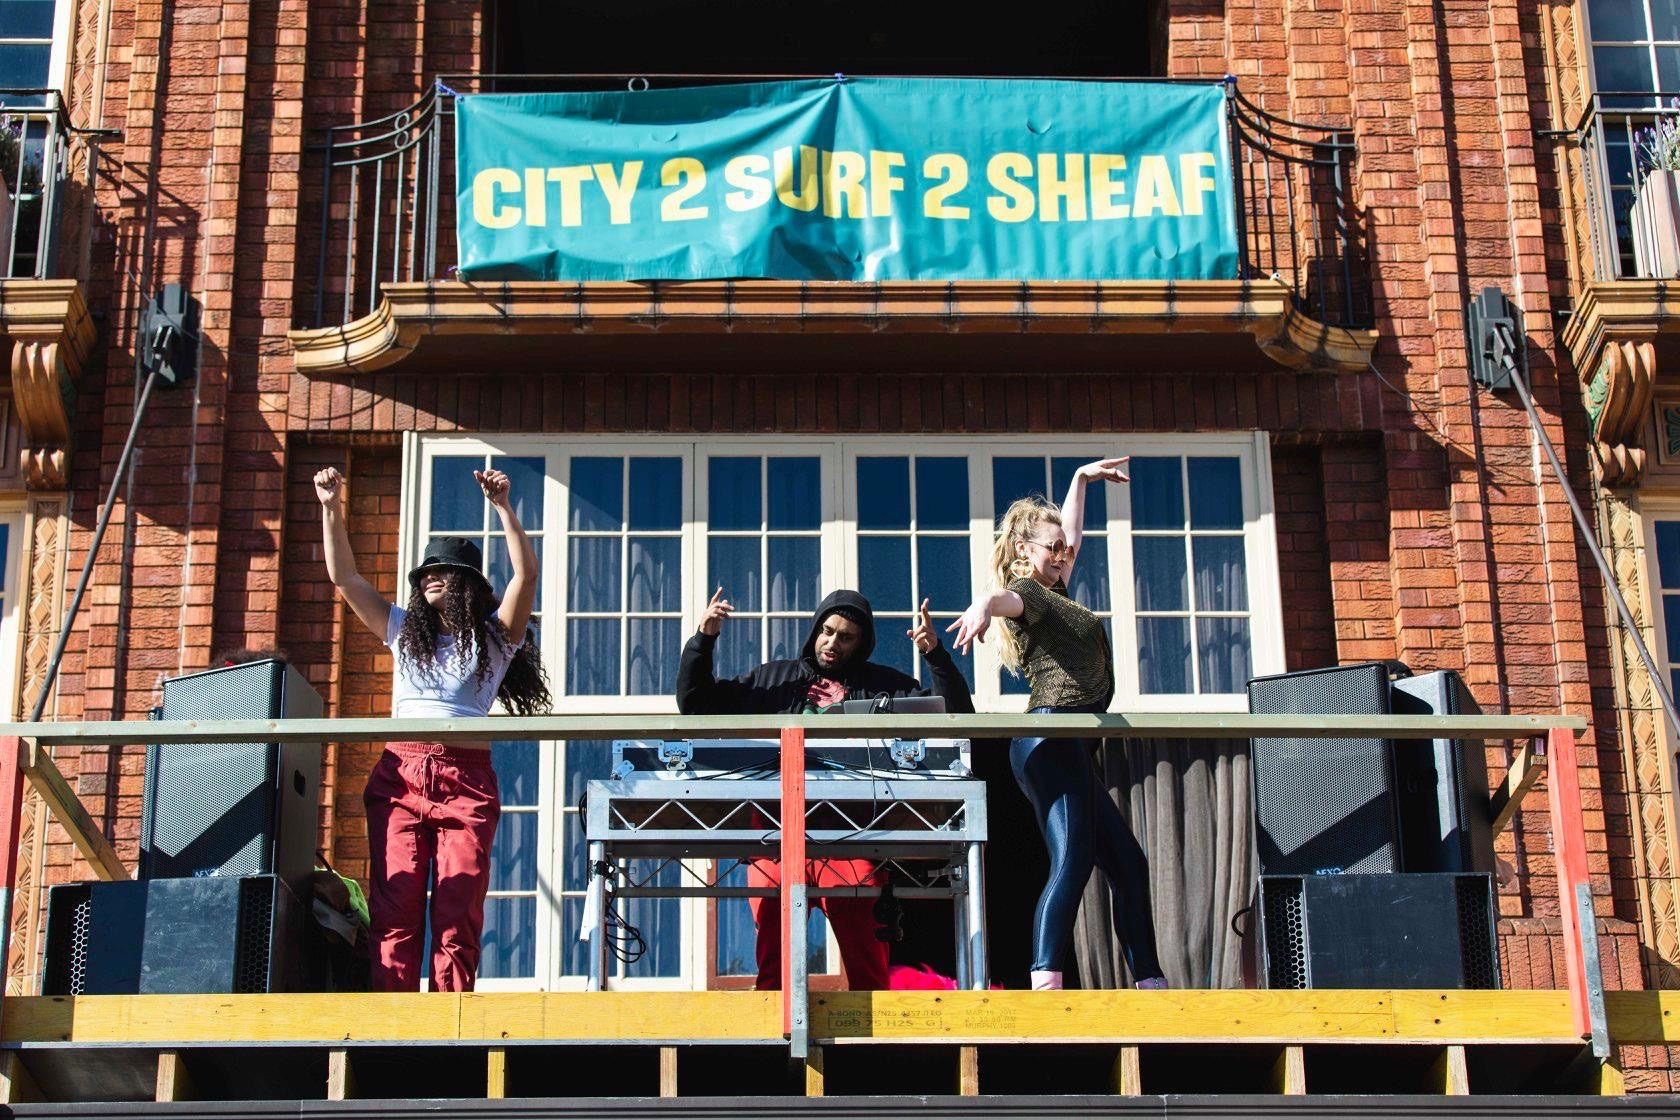 sydney design social golden sheaf hotel double bay city 2 surf 2 sheaf banner design